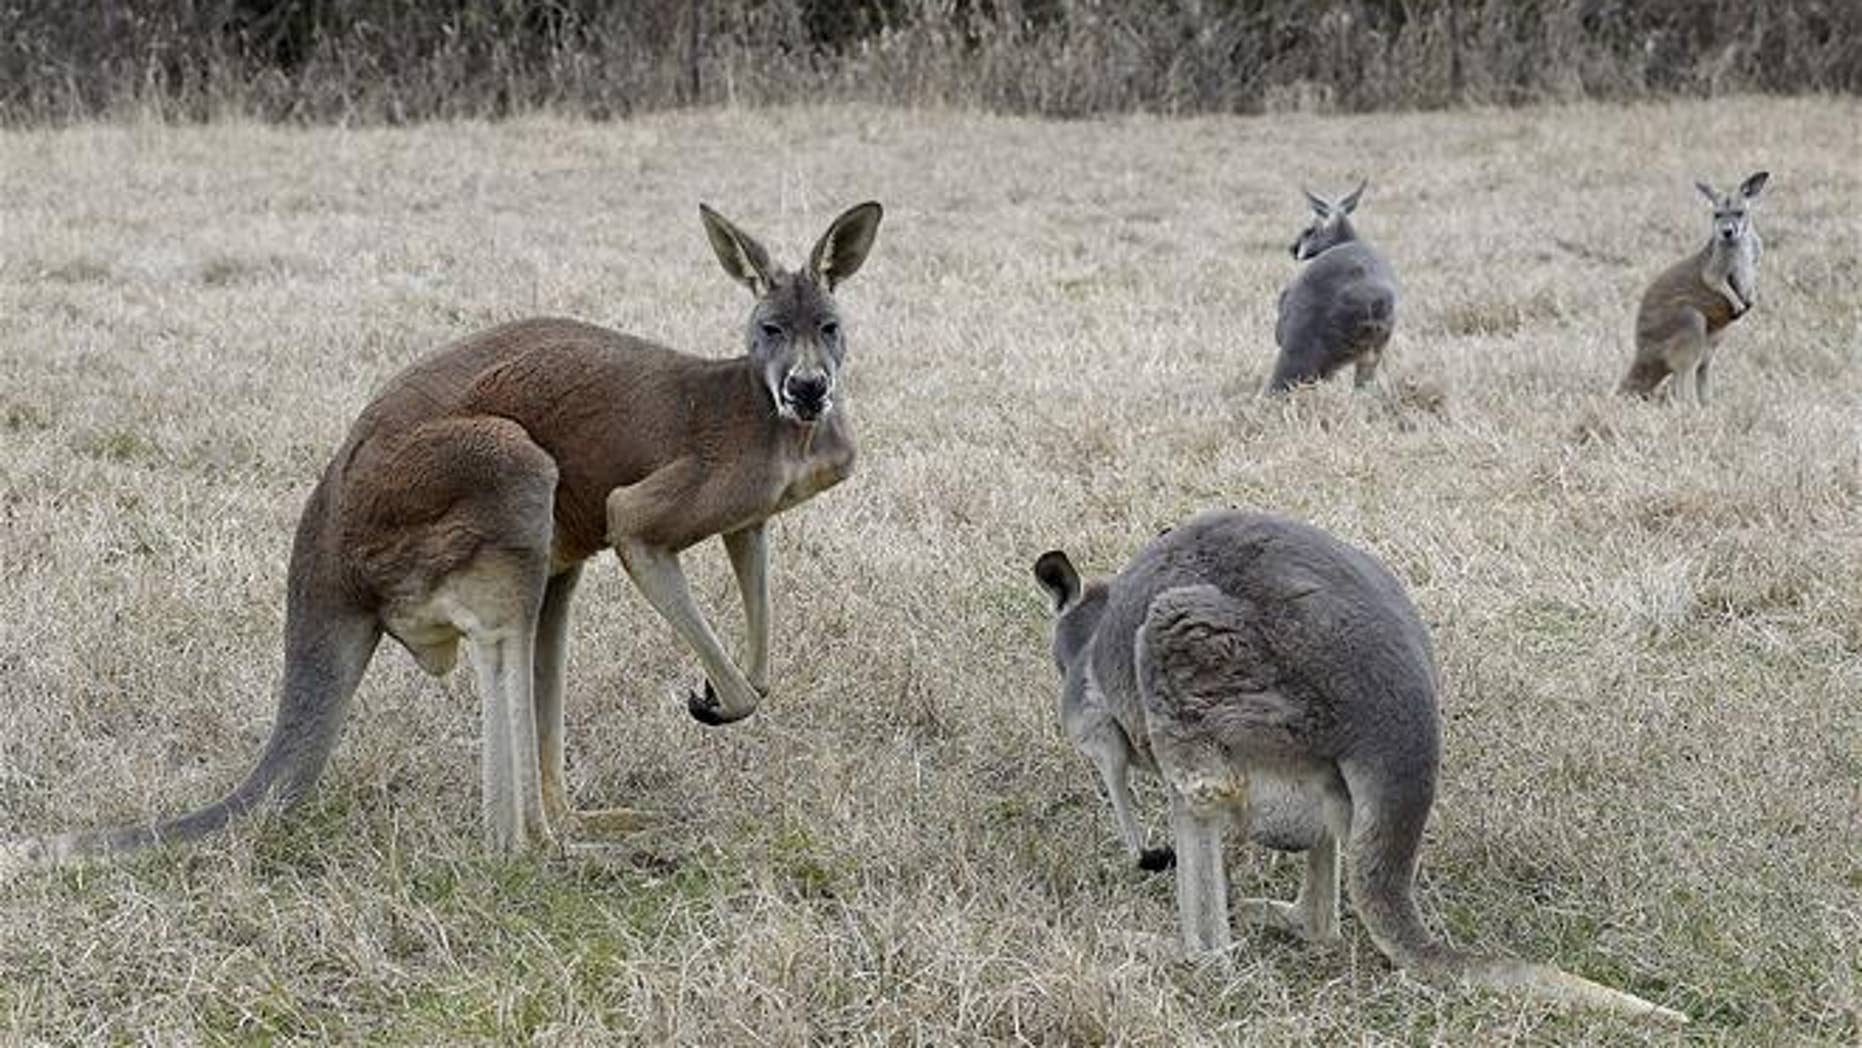 A file photo of kangaroos.